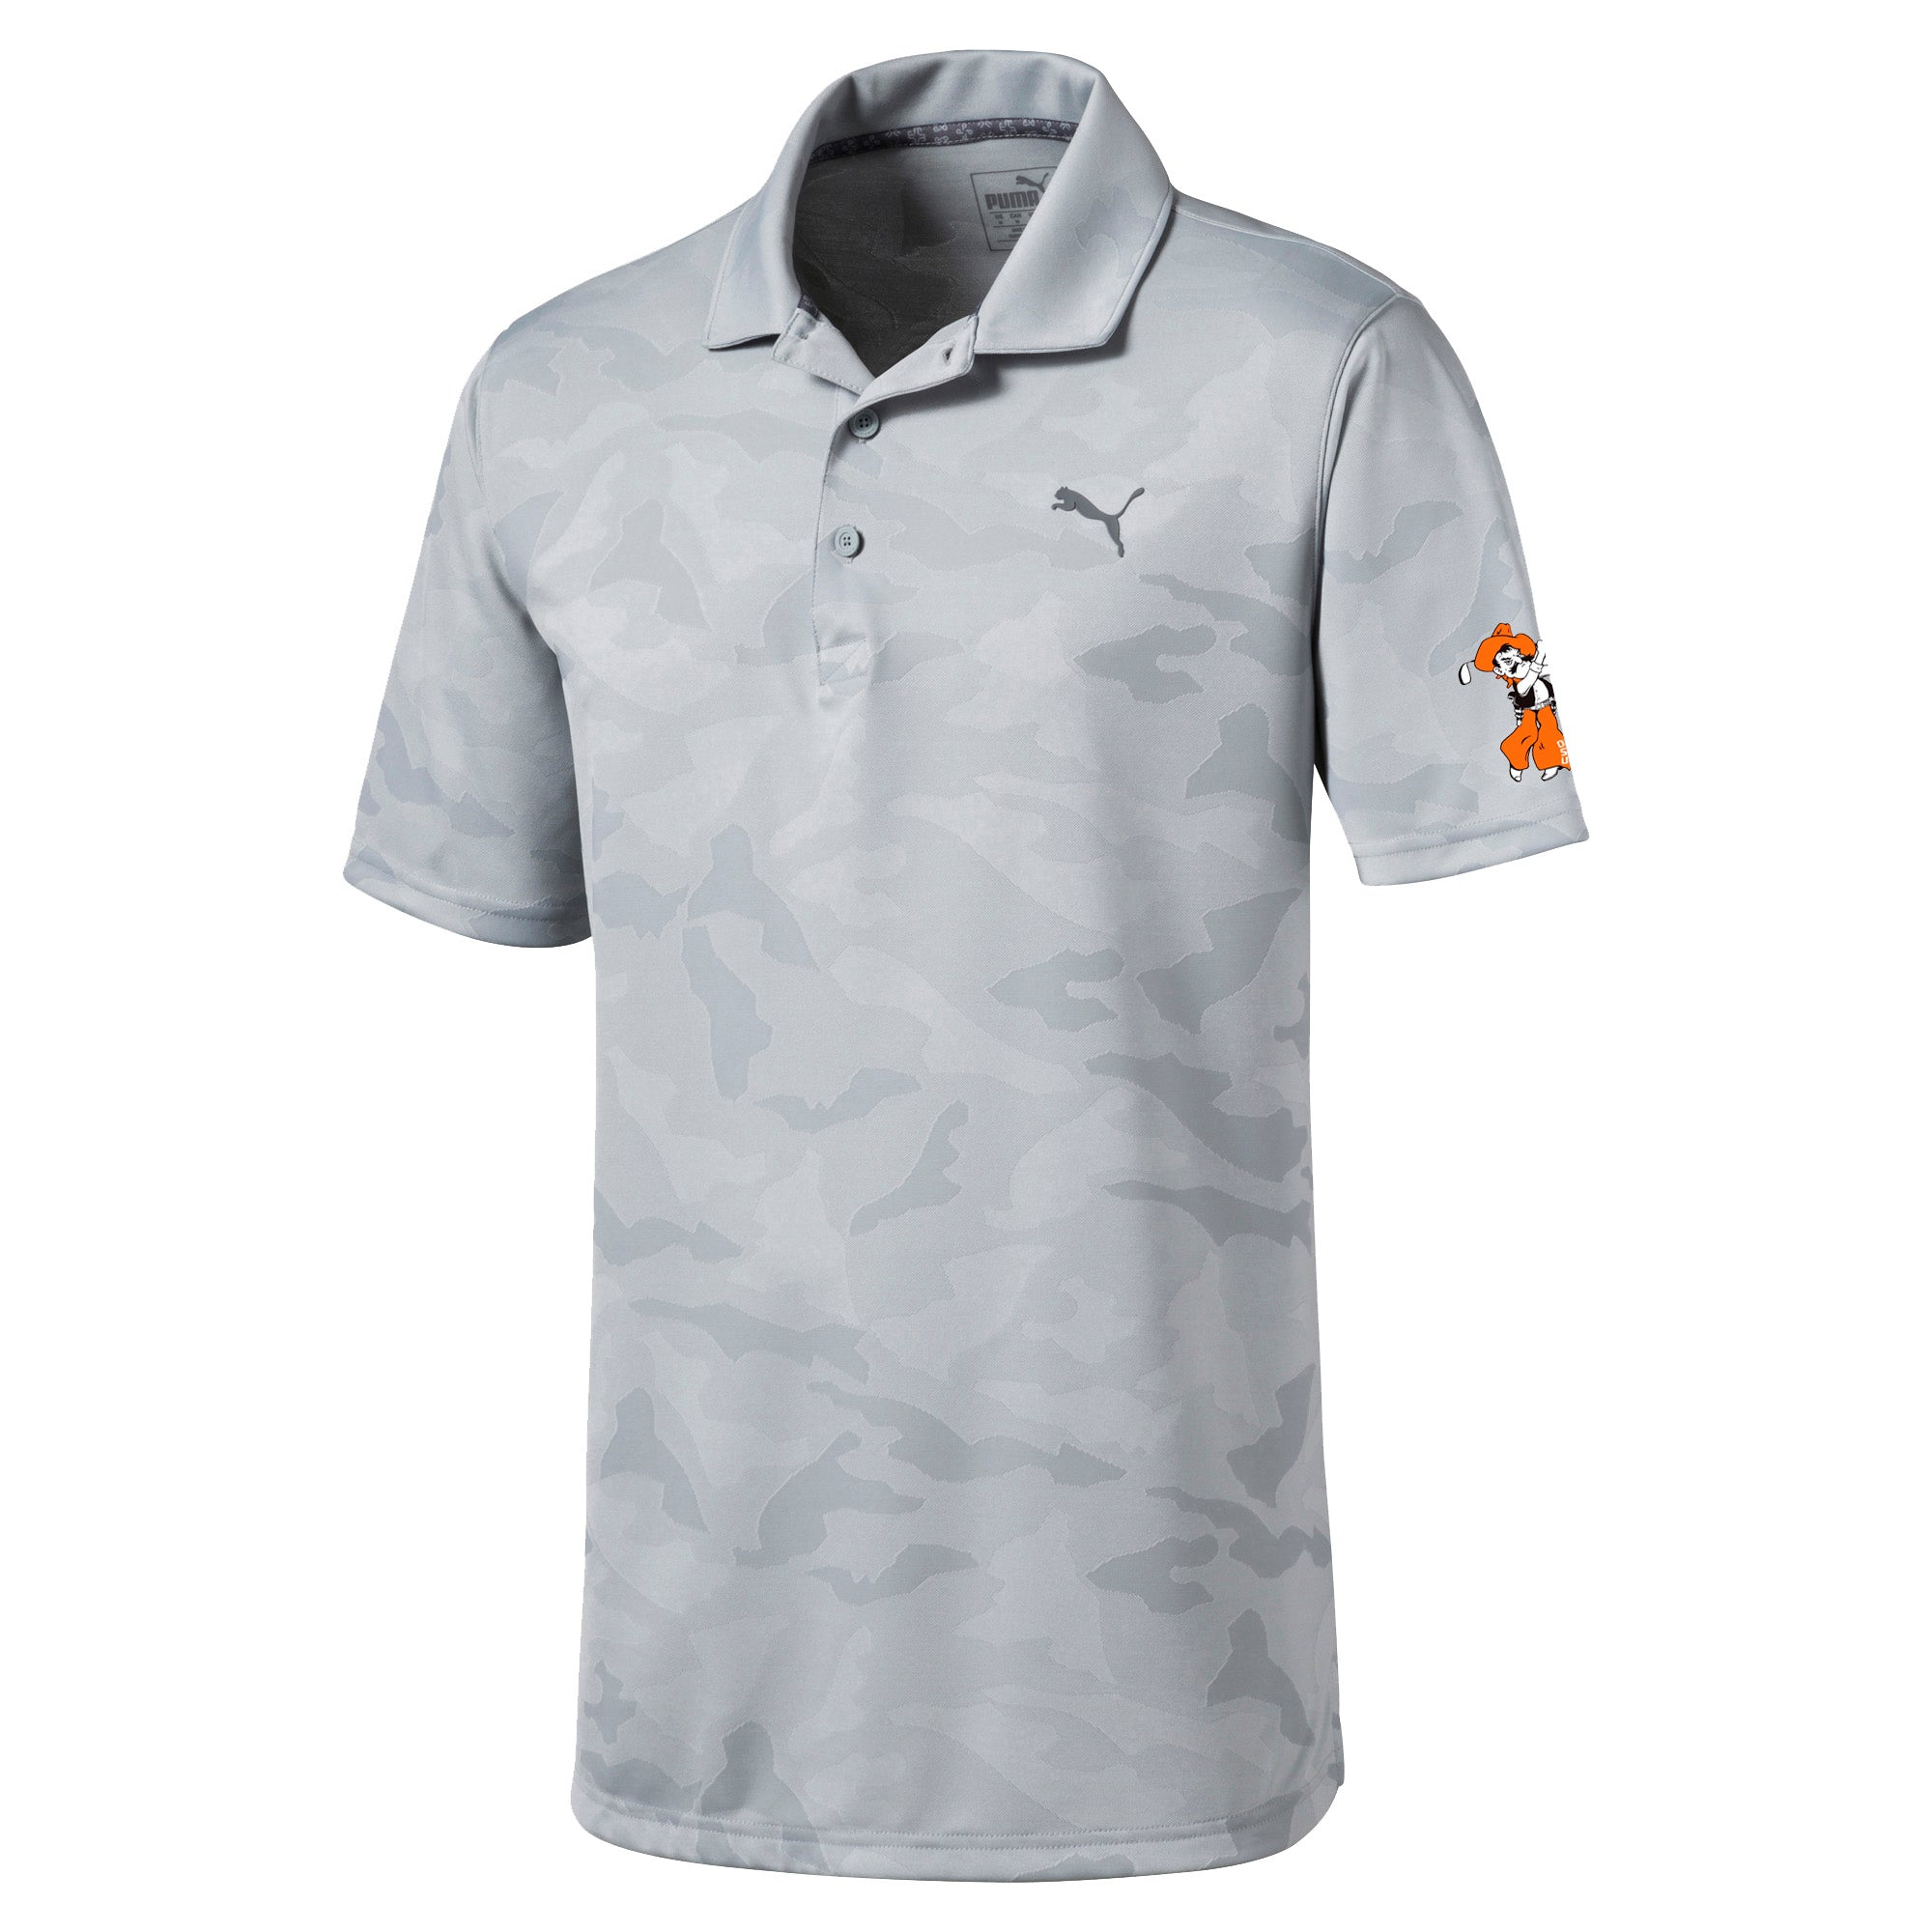 Puma Men's Alterknit Camo Polo